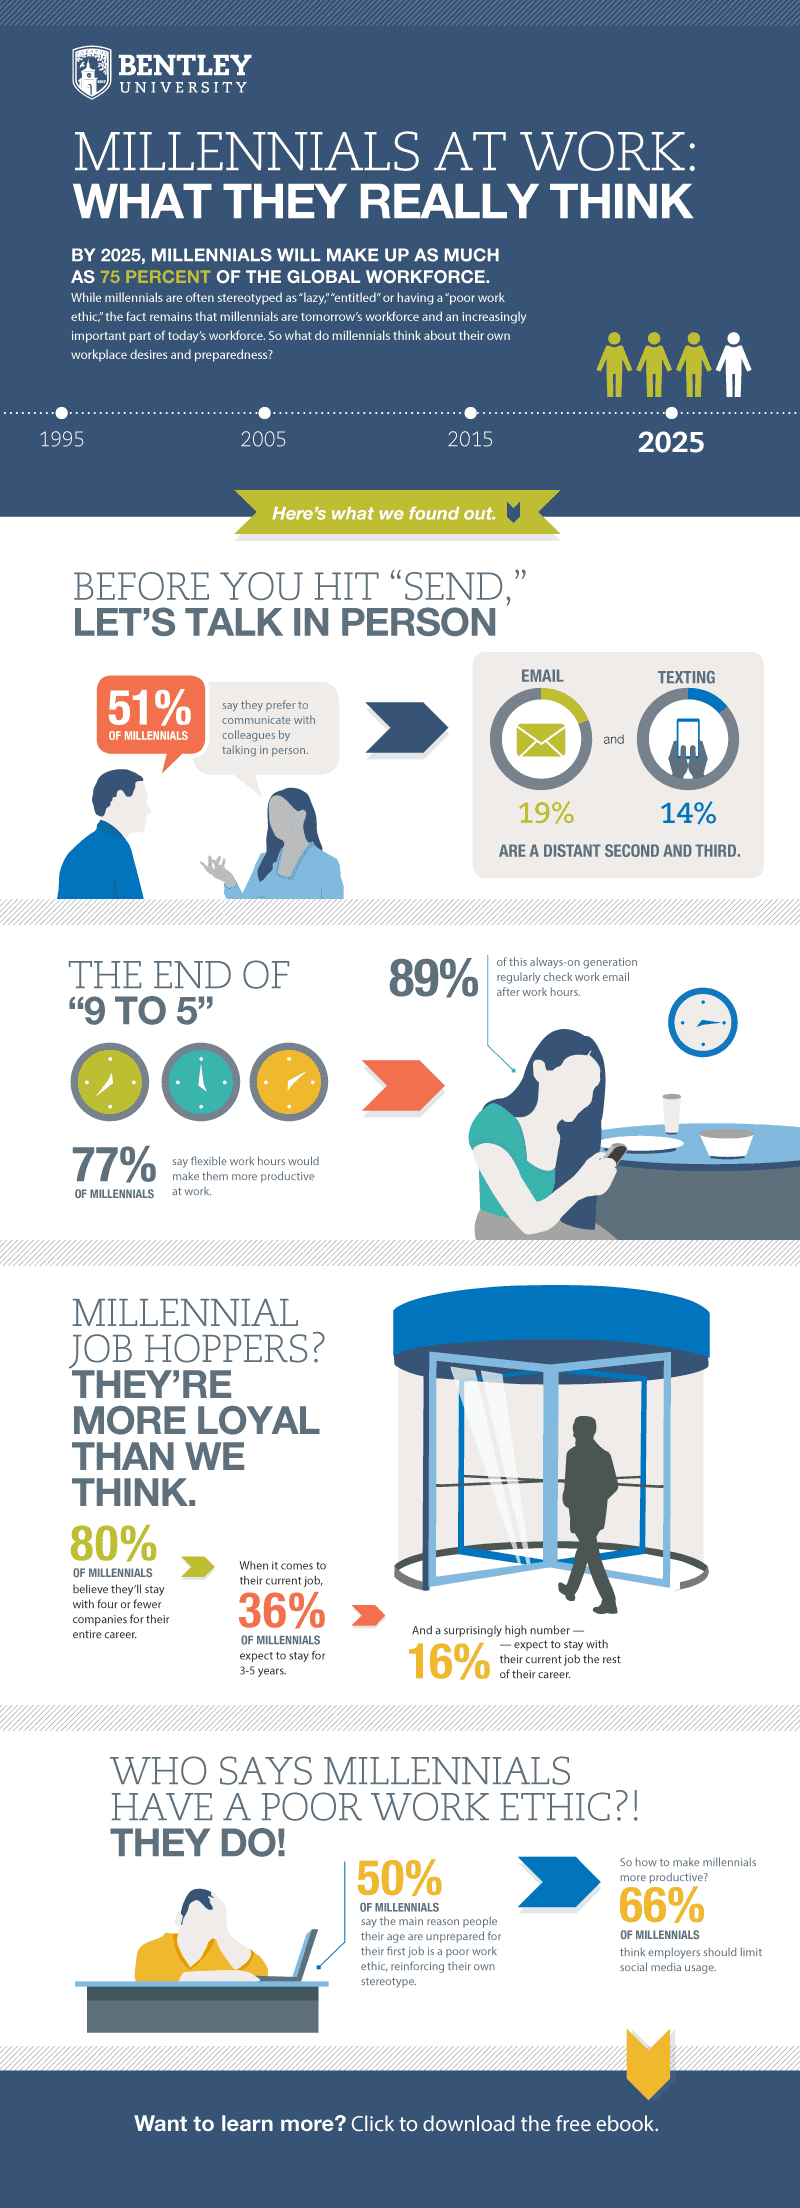 Daily Infographic: Millenials At Work